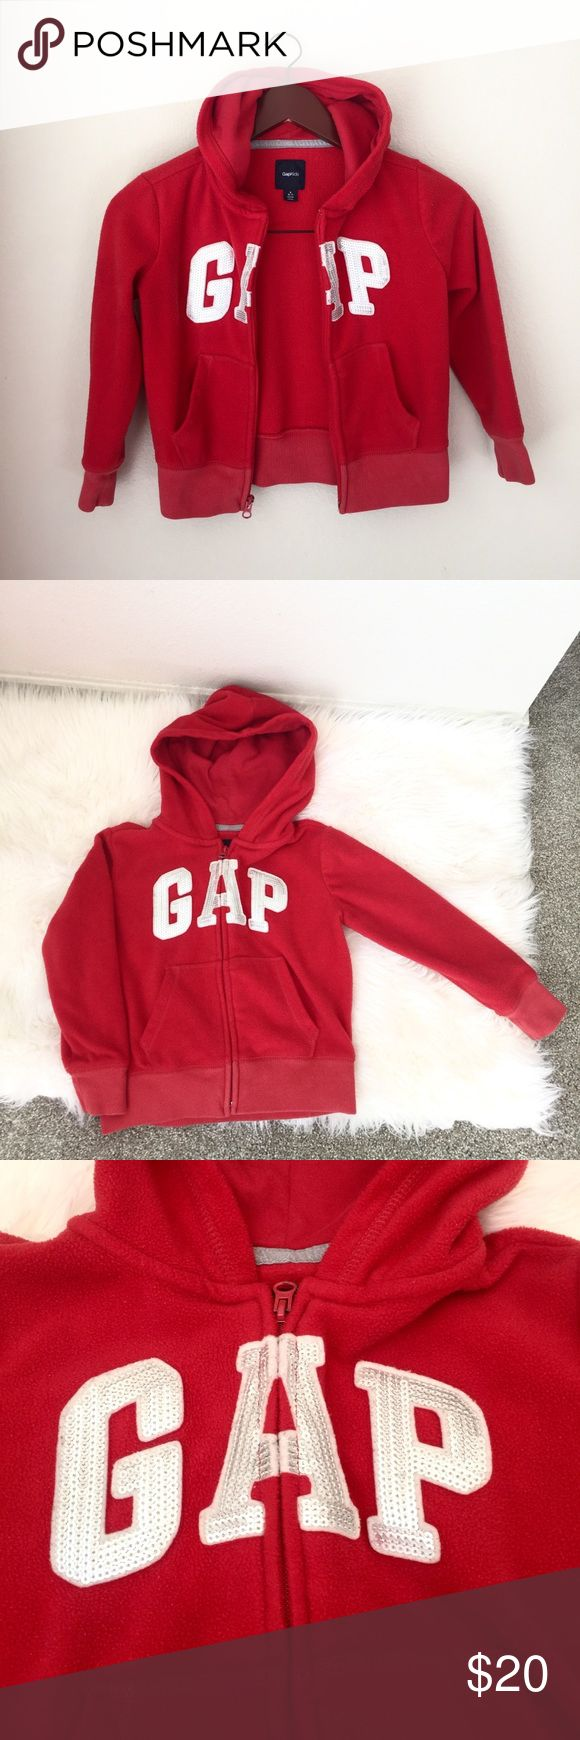 """[GAP] Red Fleece Hooded Jacket Girls Size Small Gap red fleece girls full zip jacket. Size small (6-7). Hooded, stretch waistband.   Made up of:  Shell: 100% Polyester  Lining: 60% Cotton, 40% Polyester   Measured flat and approximately:  Length: 17"""", Underarm to Underarm: 16"""".  Great Condition!  K30 GAP Jackets & Coats"""